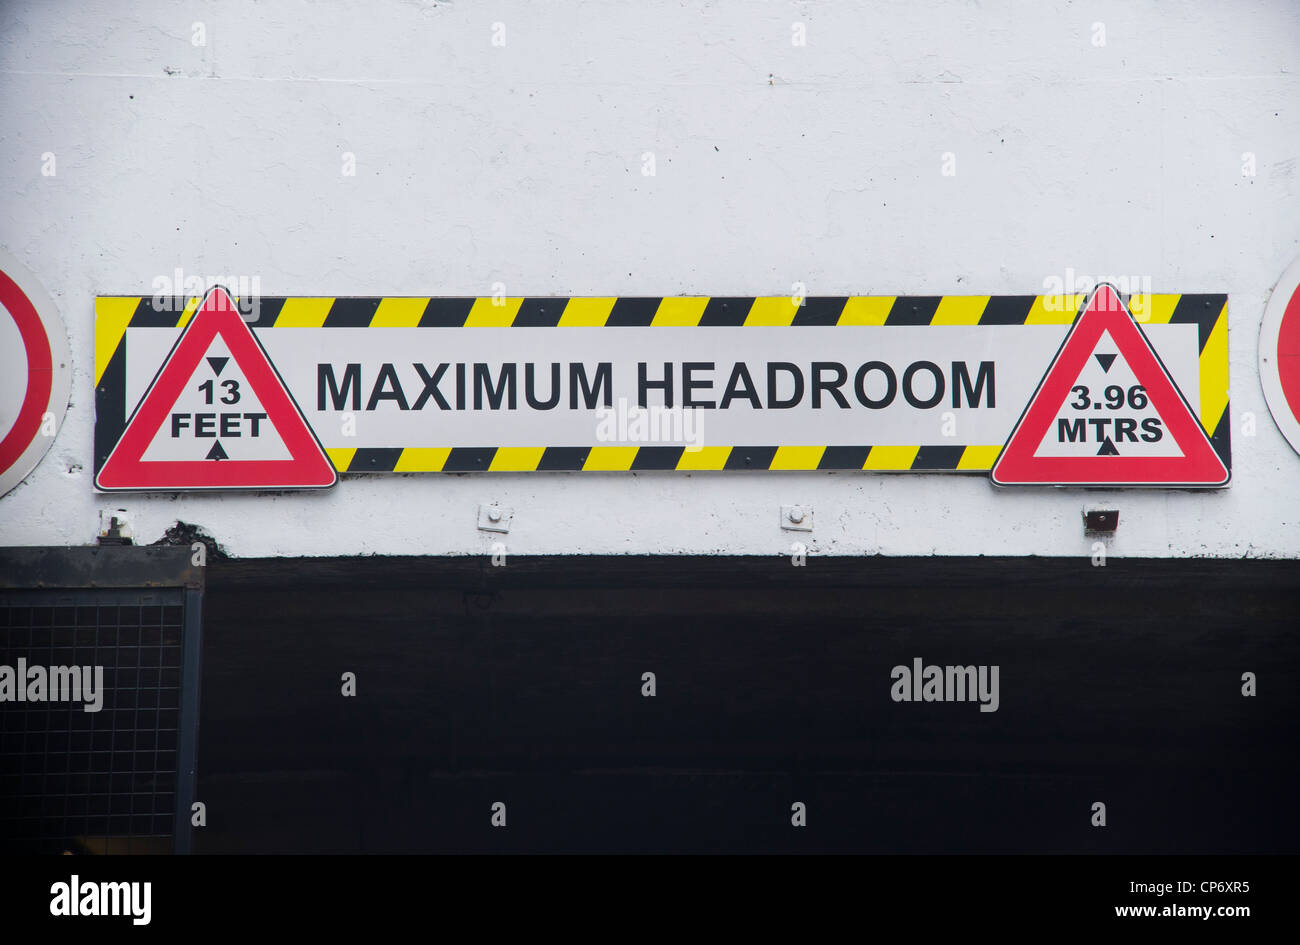 height warning sign for vehicles travelling under low tunnel - Stock Image